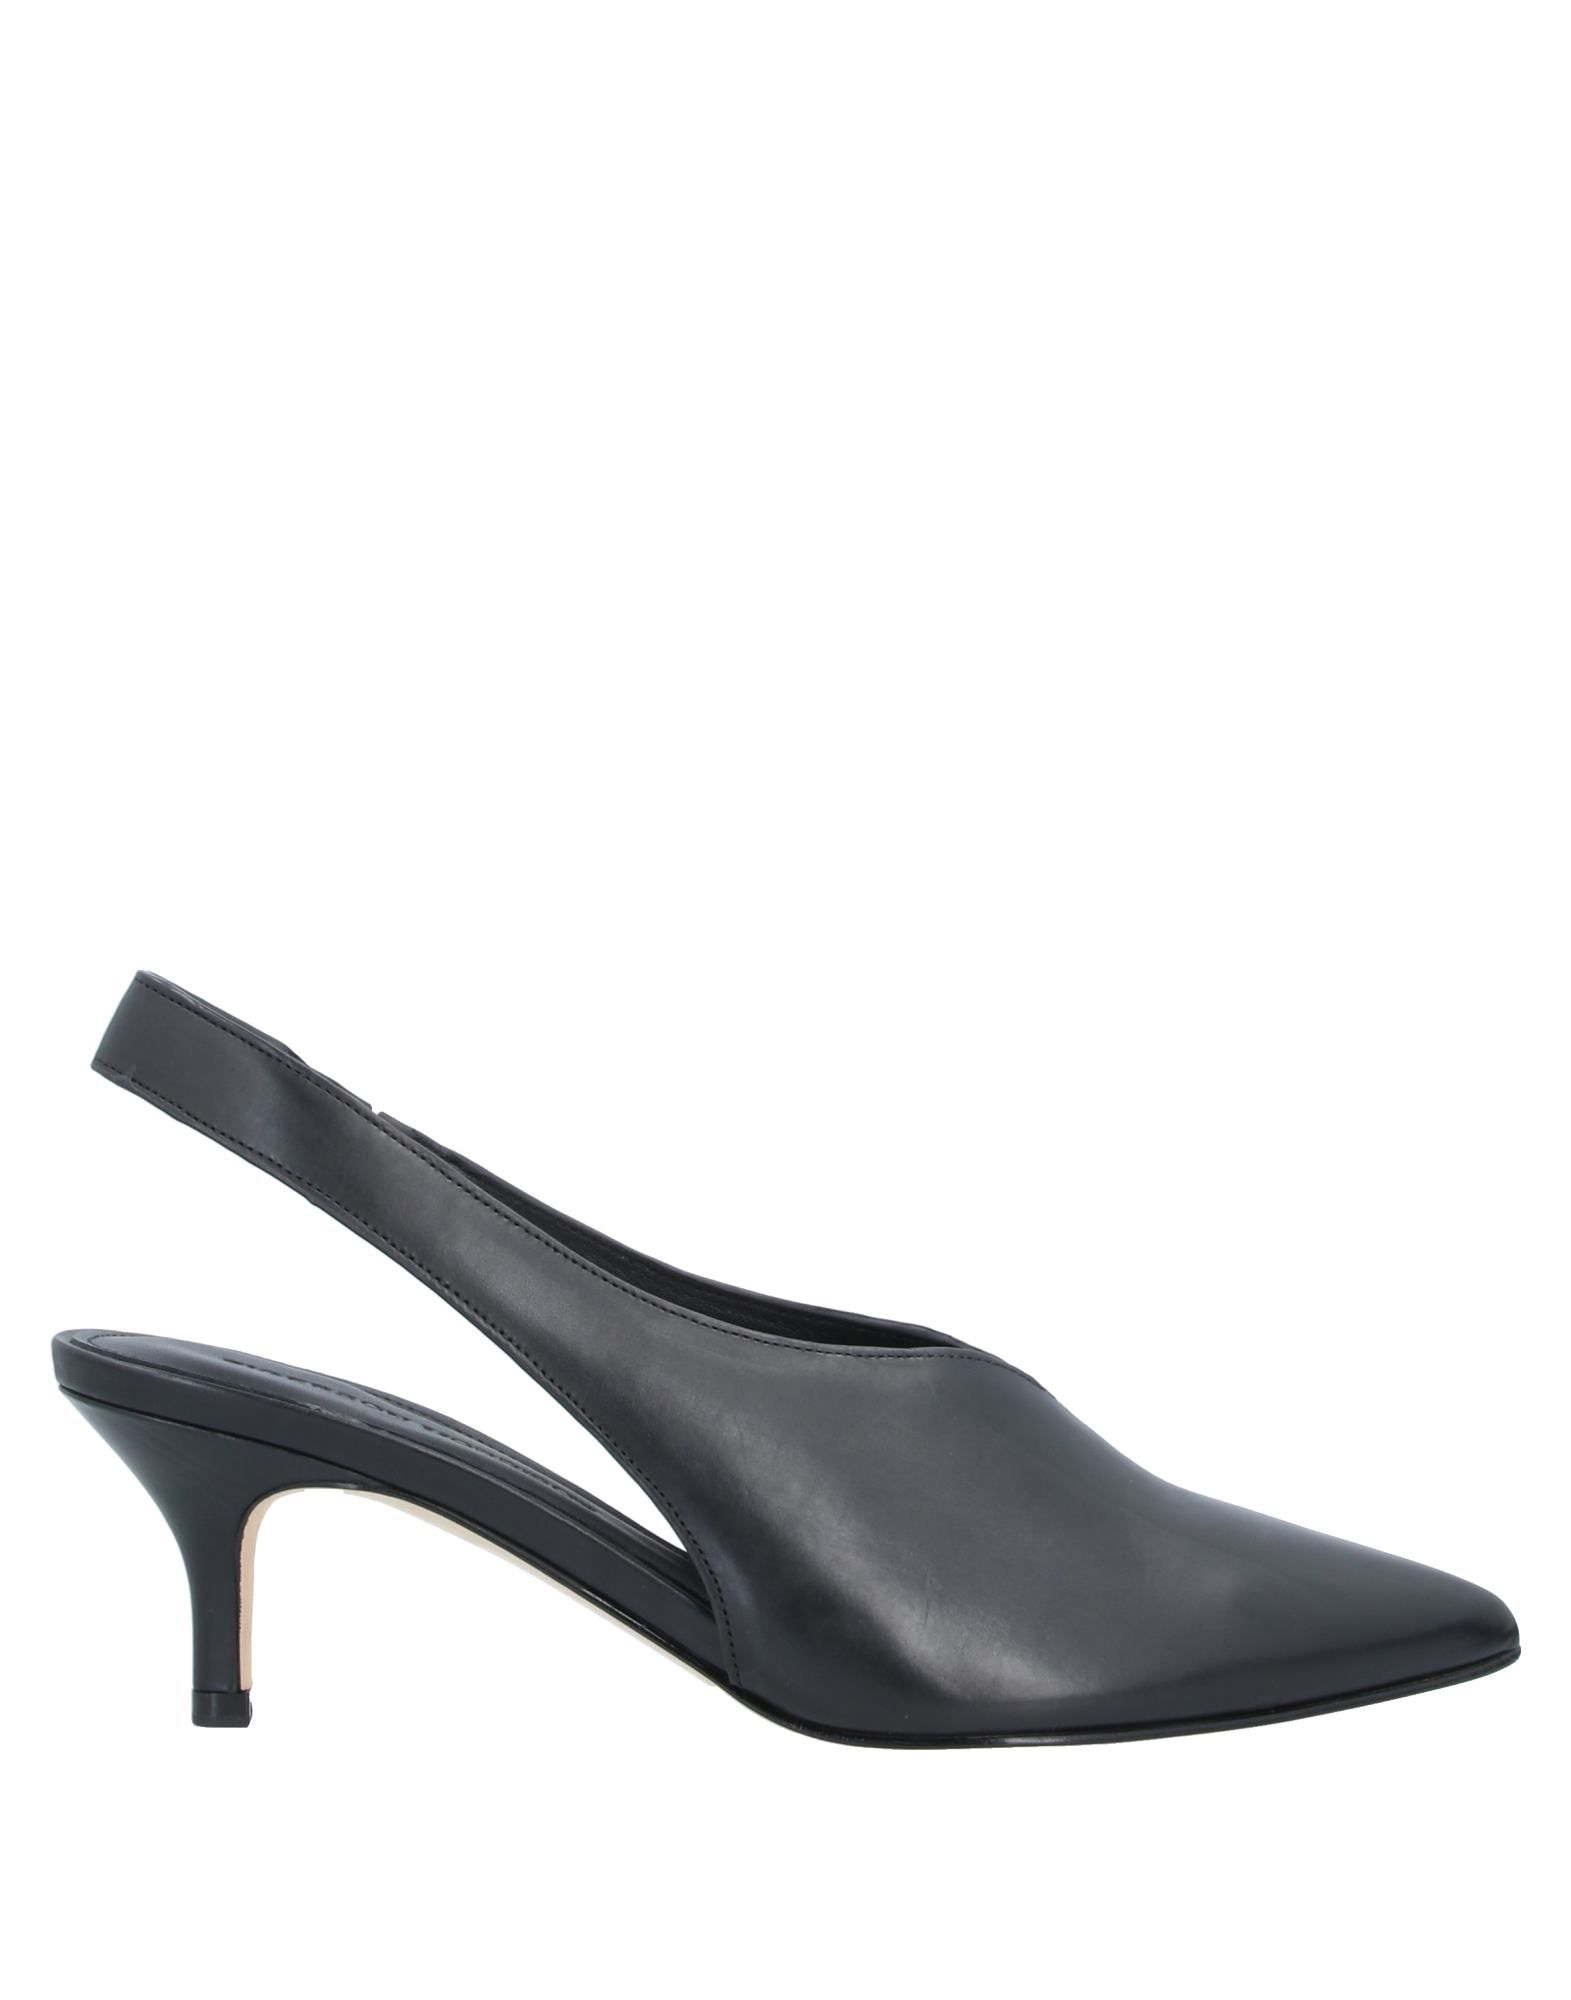 SIGERSON MORRISON Pumps - Item 11850766